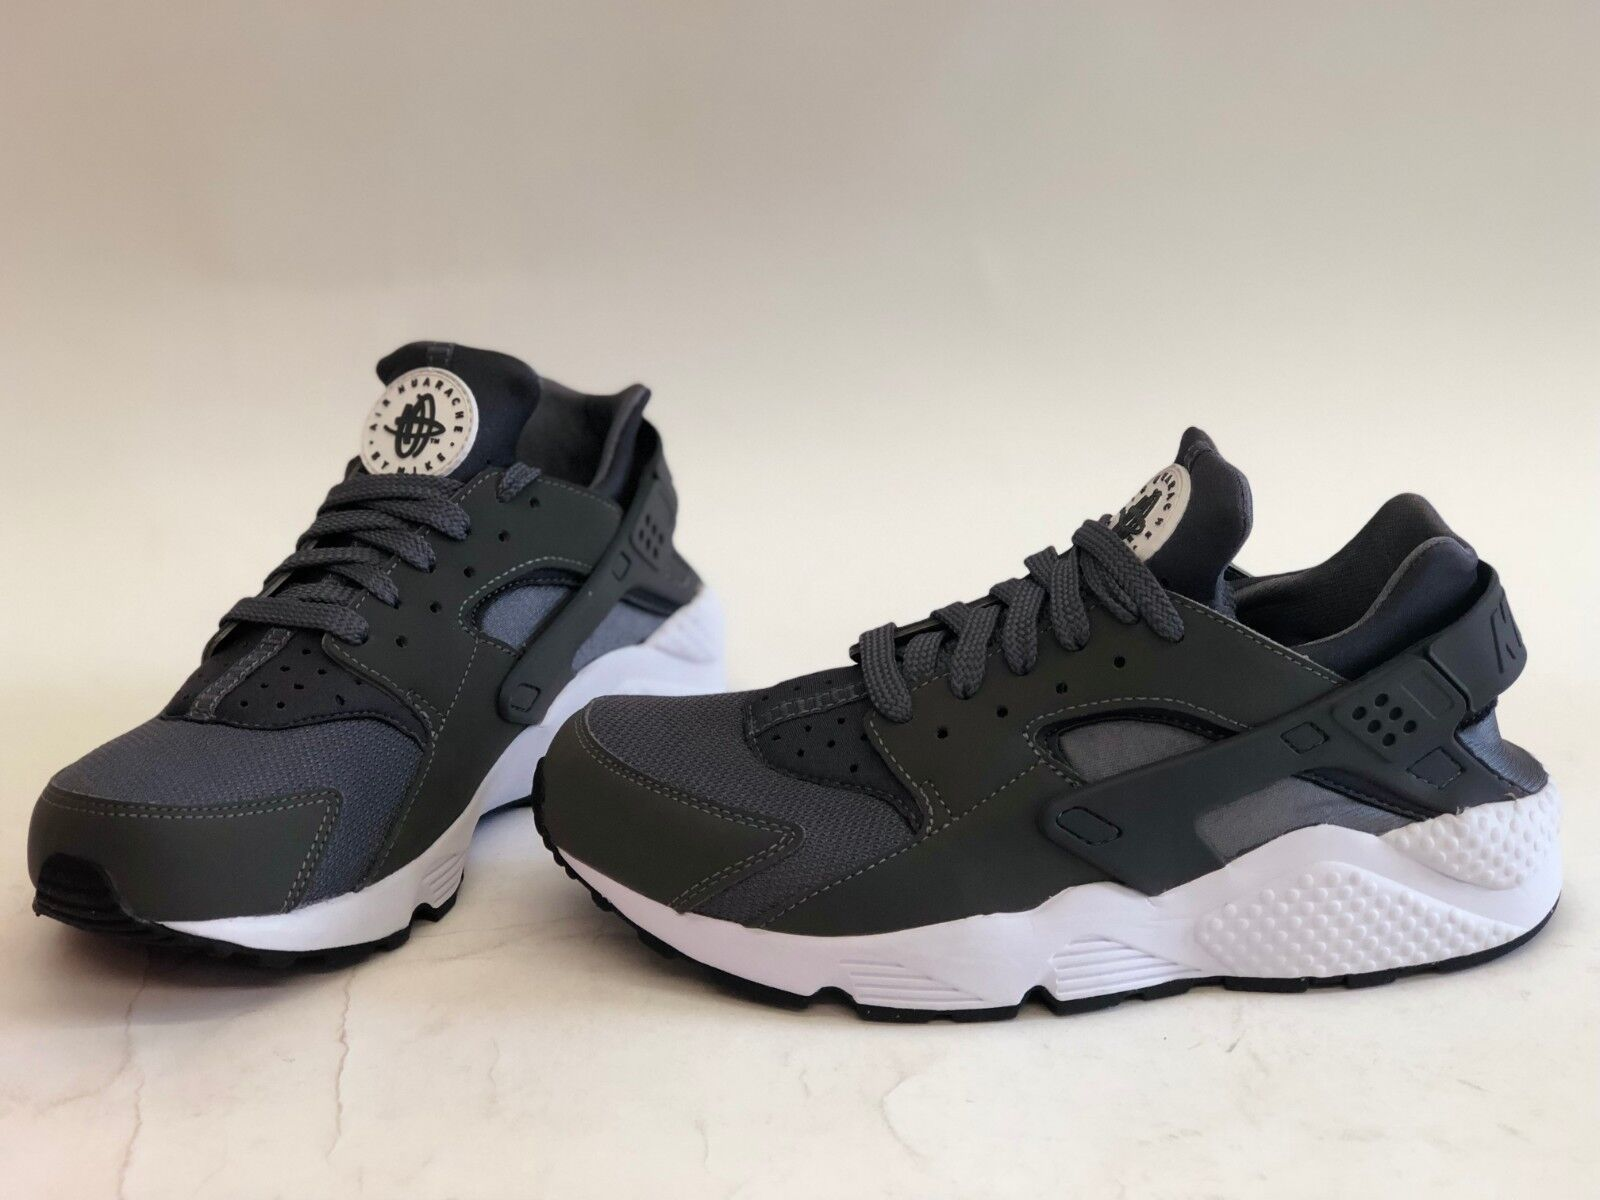 NIB MENS SIZE 8.5 NIKE AIR HUARACHE RUNNING SNEAKERS GREY 318429-037